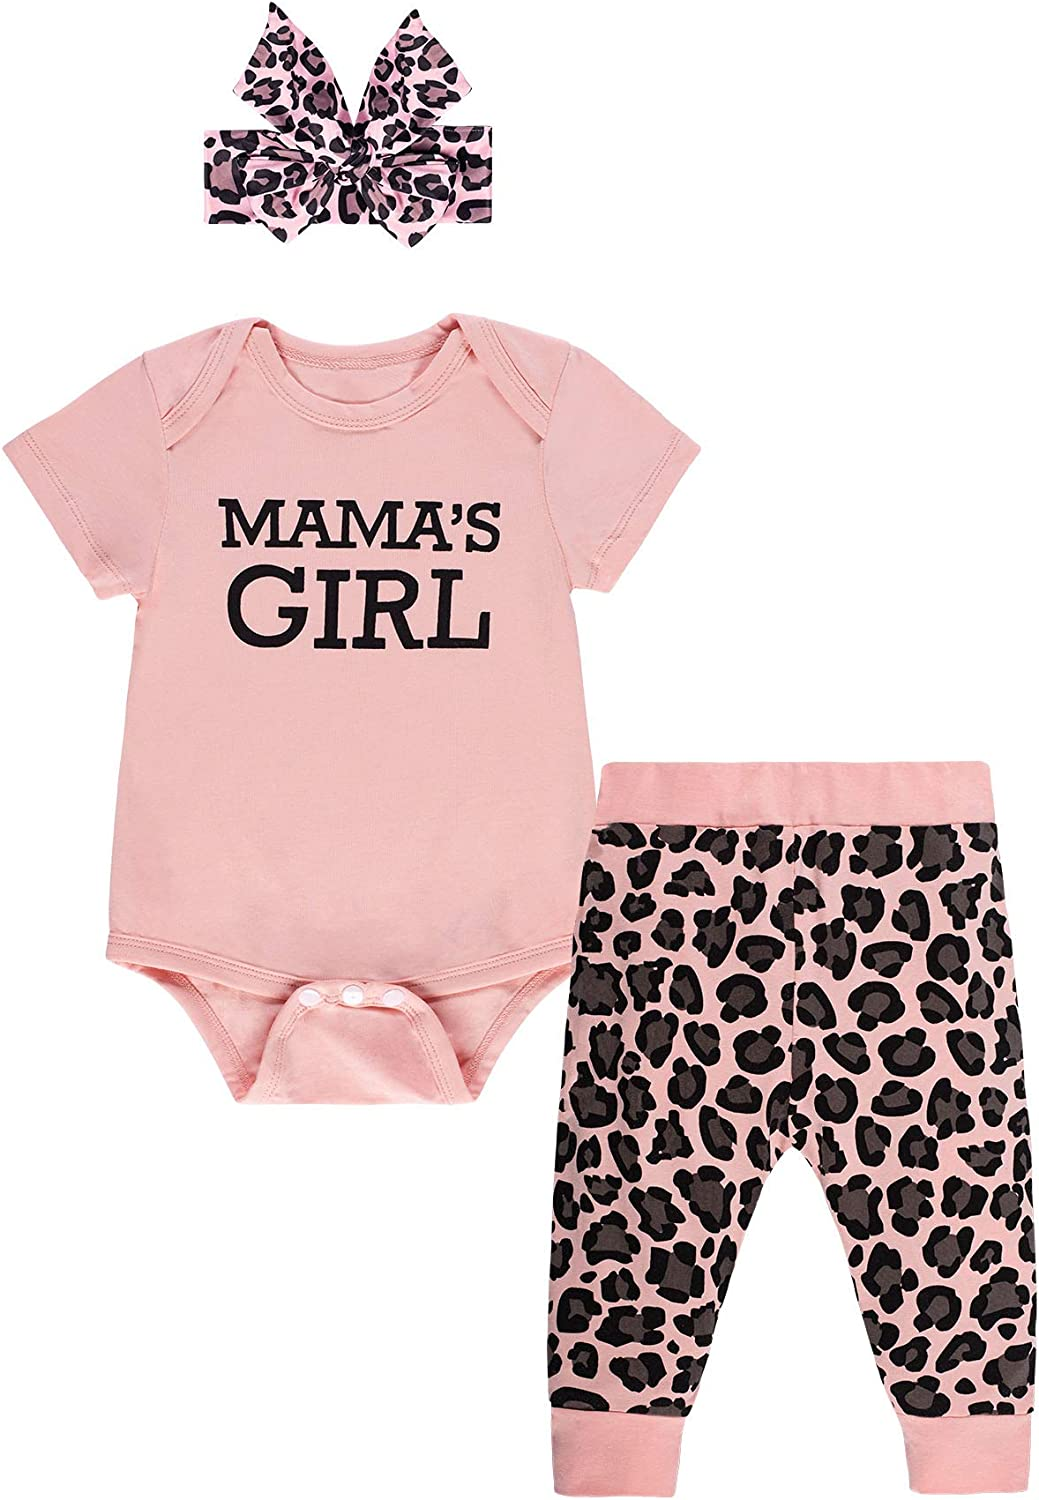 Direct store Infant Baby Girls Clothes Mommy Summer Super beauty product restock quality top Outfit Set Sayings Bodysu